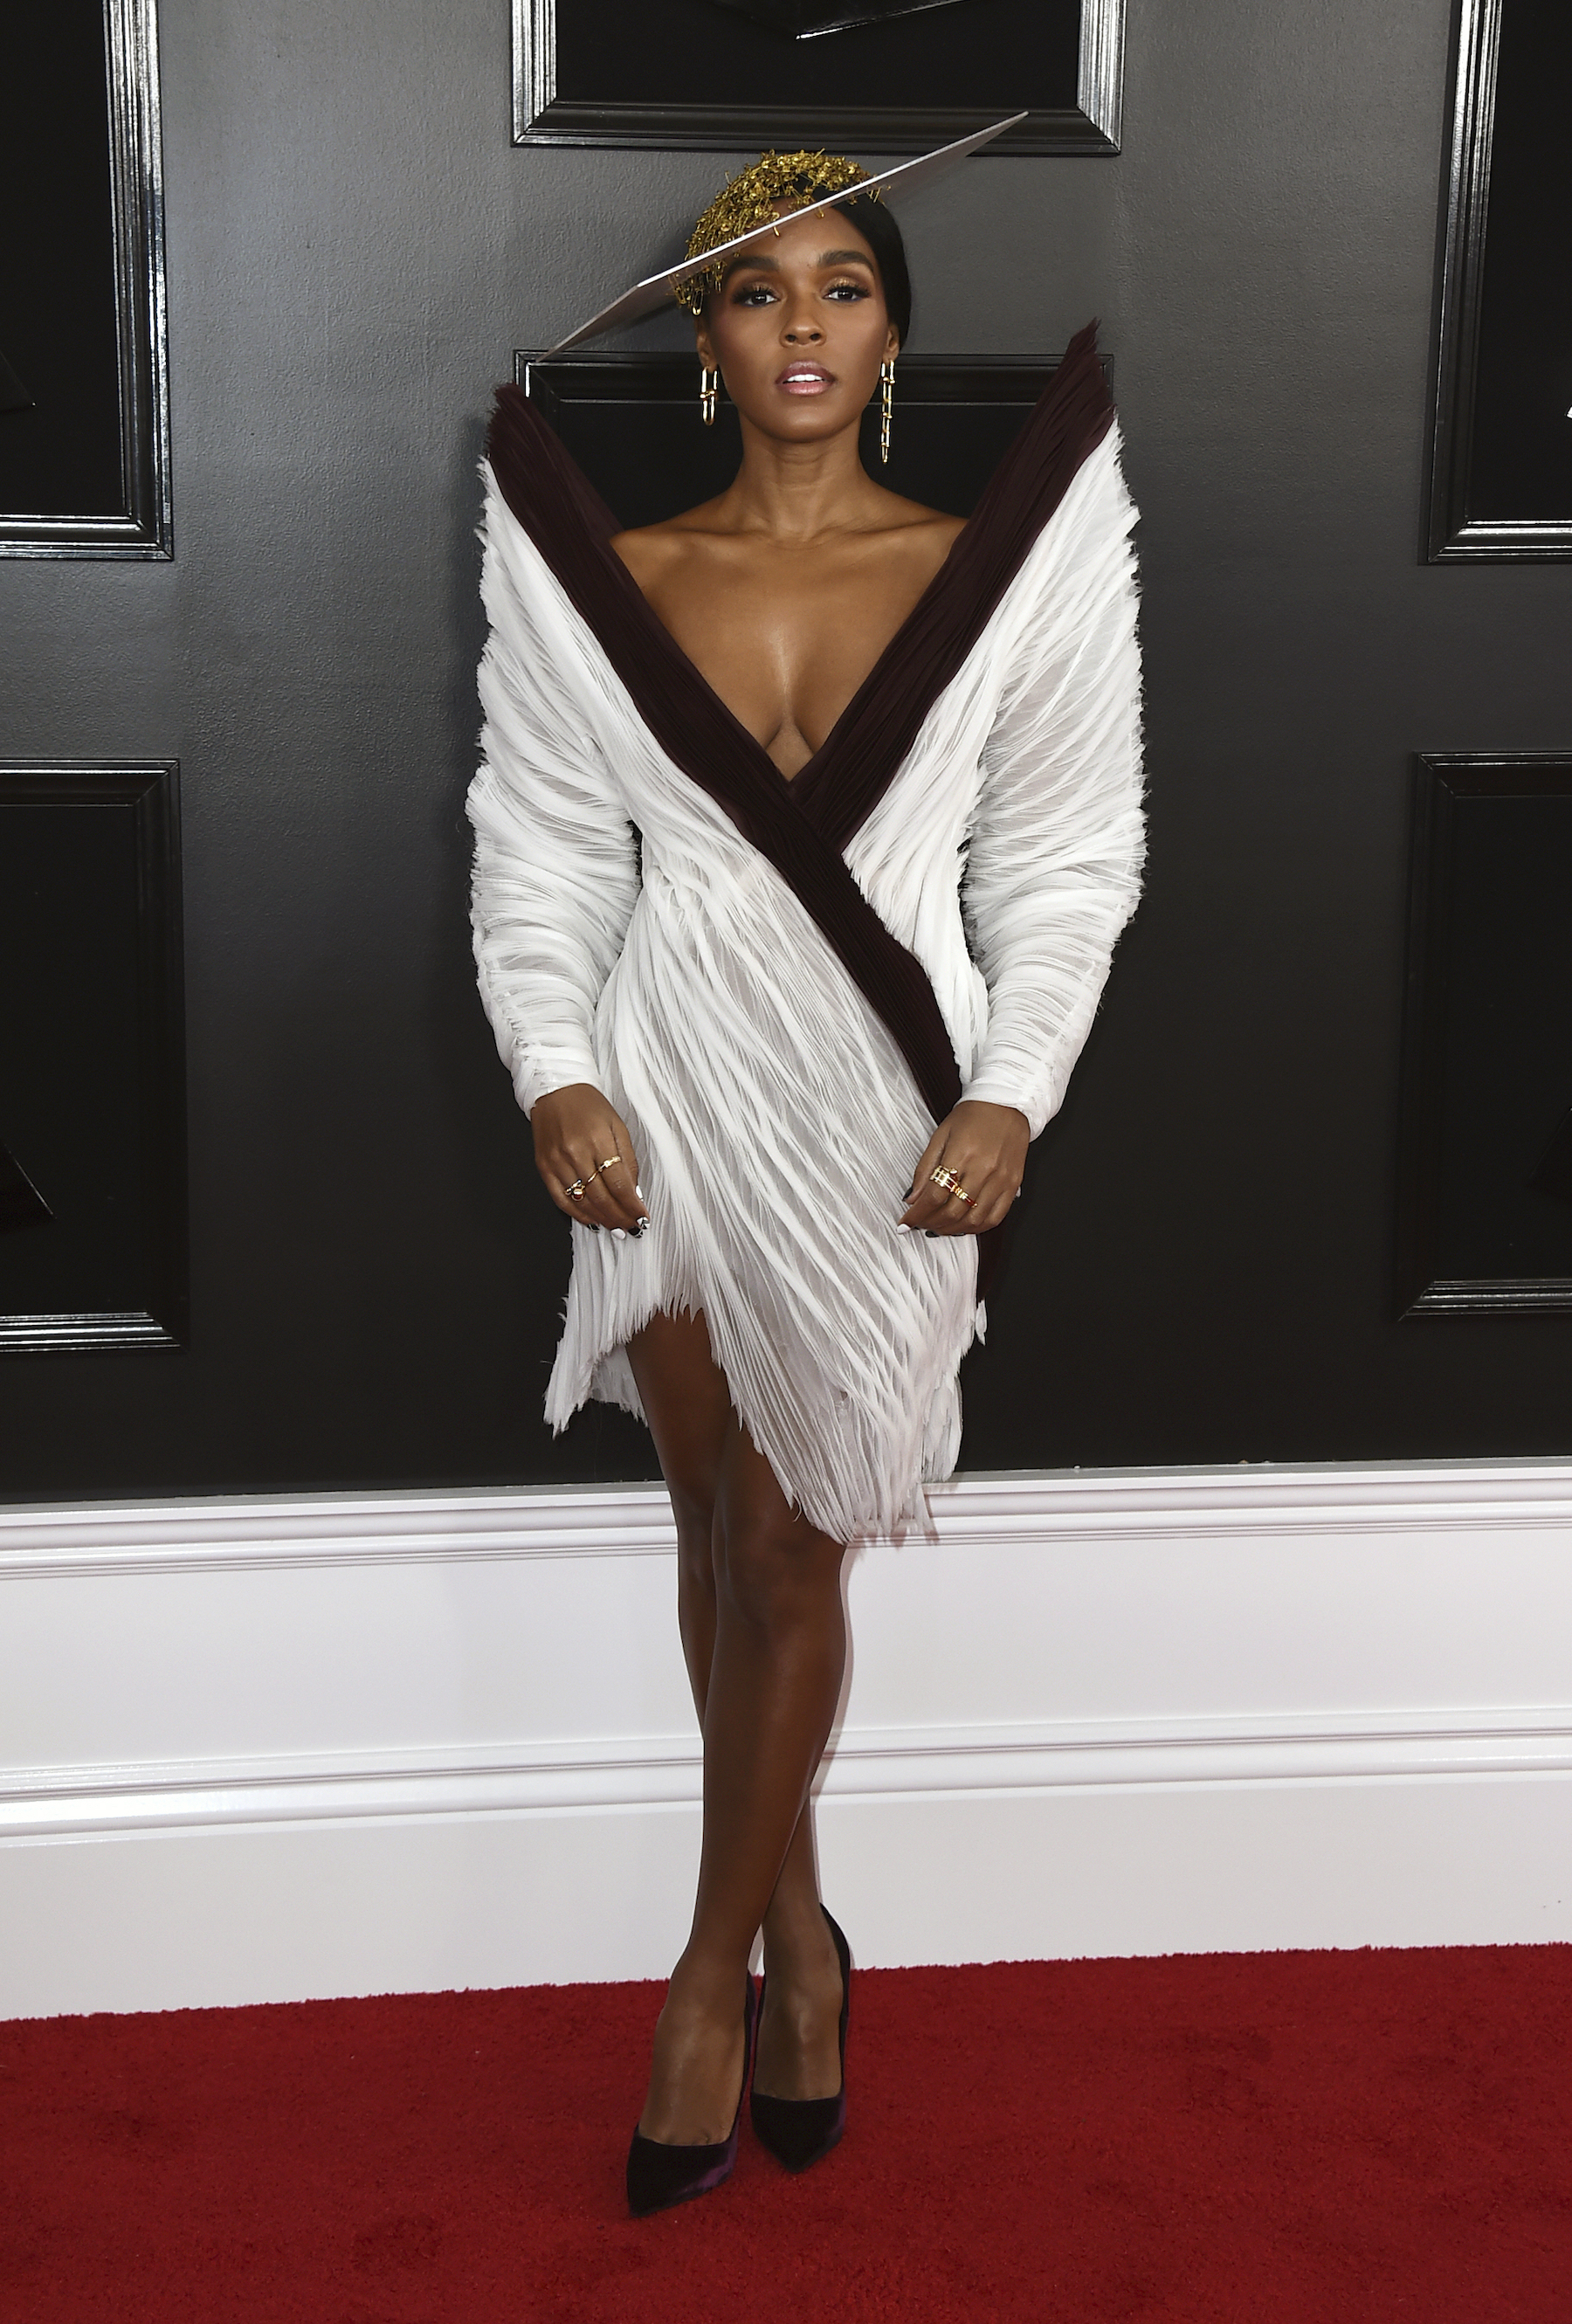 "<div class=""meta image-caption""><div class=""origin-logo origin-image ap""><span>AP</span></div><span class=""caption-text"">Janelle Monae arrives at the 61st annual Grammy Awards at the Staples Center on Sunday, Feb. 10, 2019, in Los Angeles. (Jordan Strauss/Invision/AP)</span></div>"